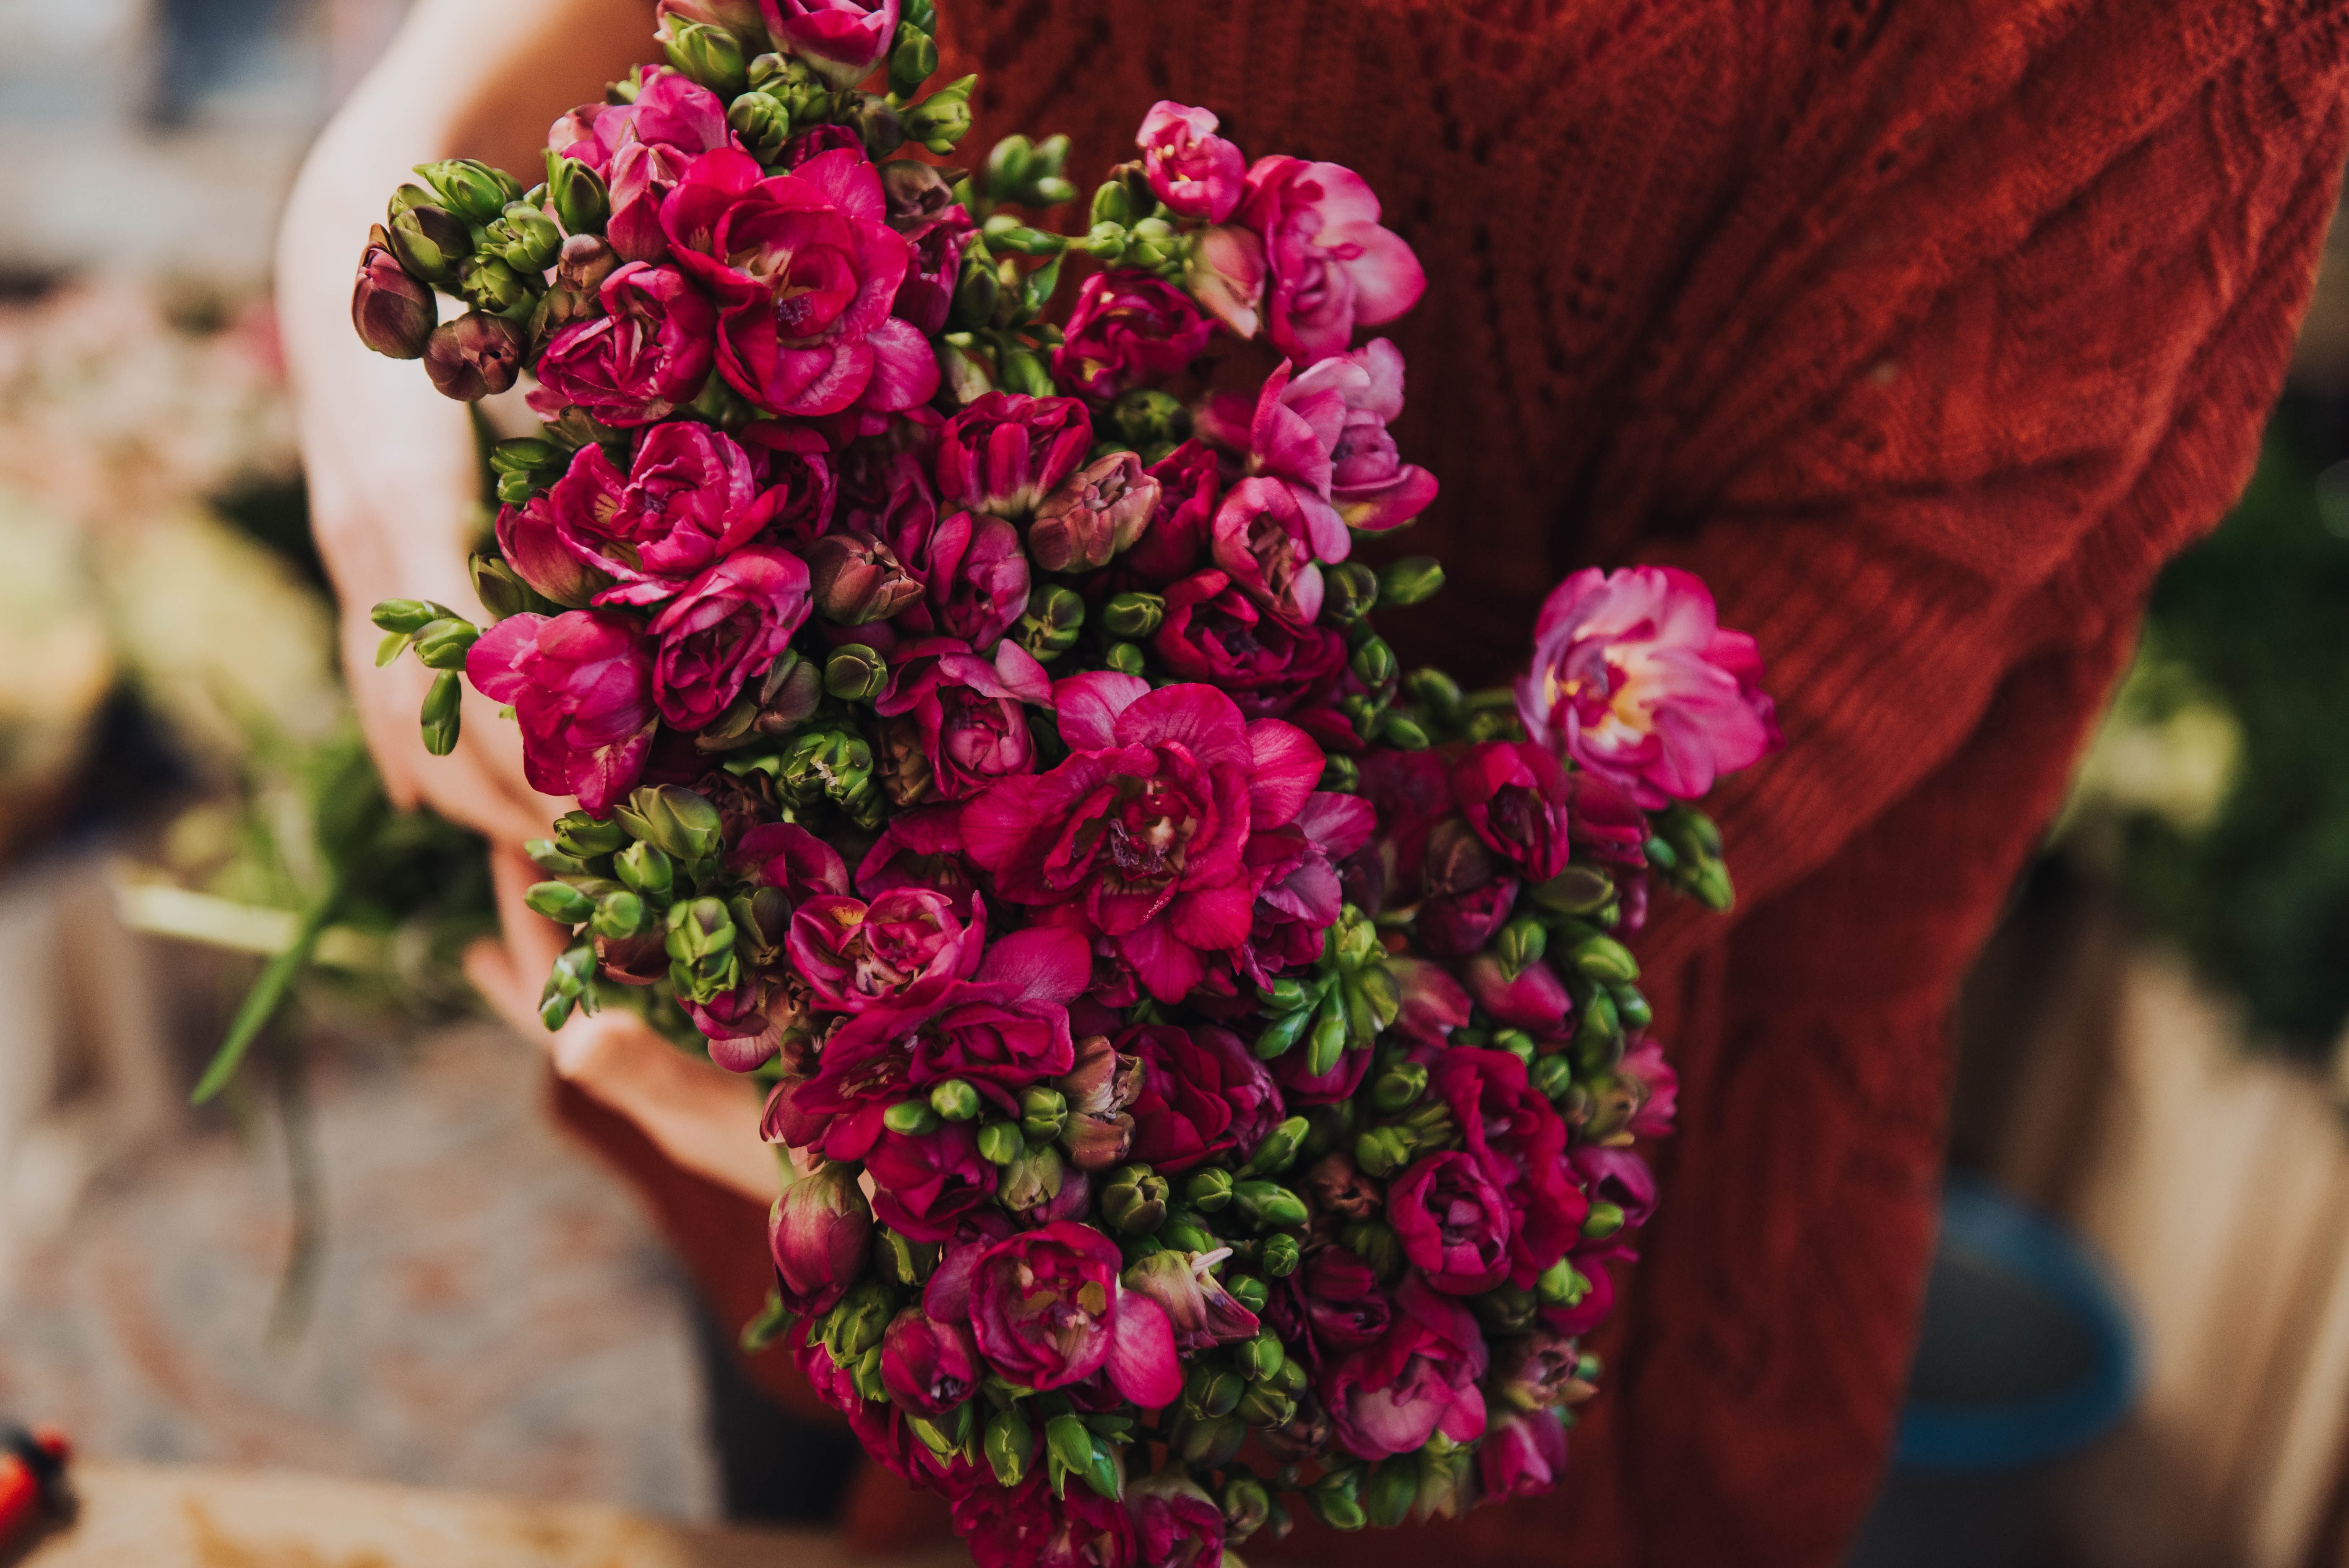 5 Cute Valentine Gift Ideas to Conquer the Love of Your Heart